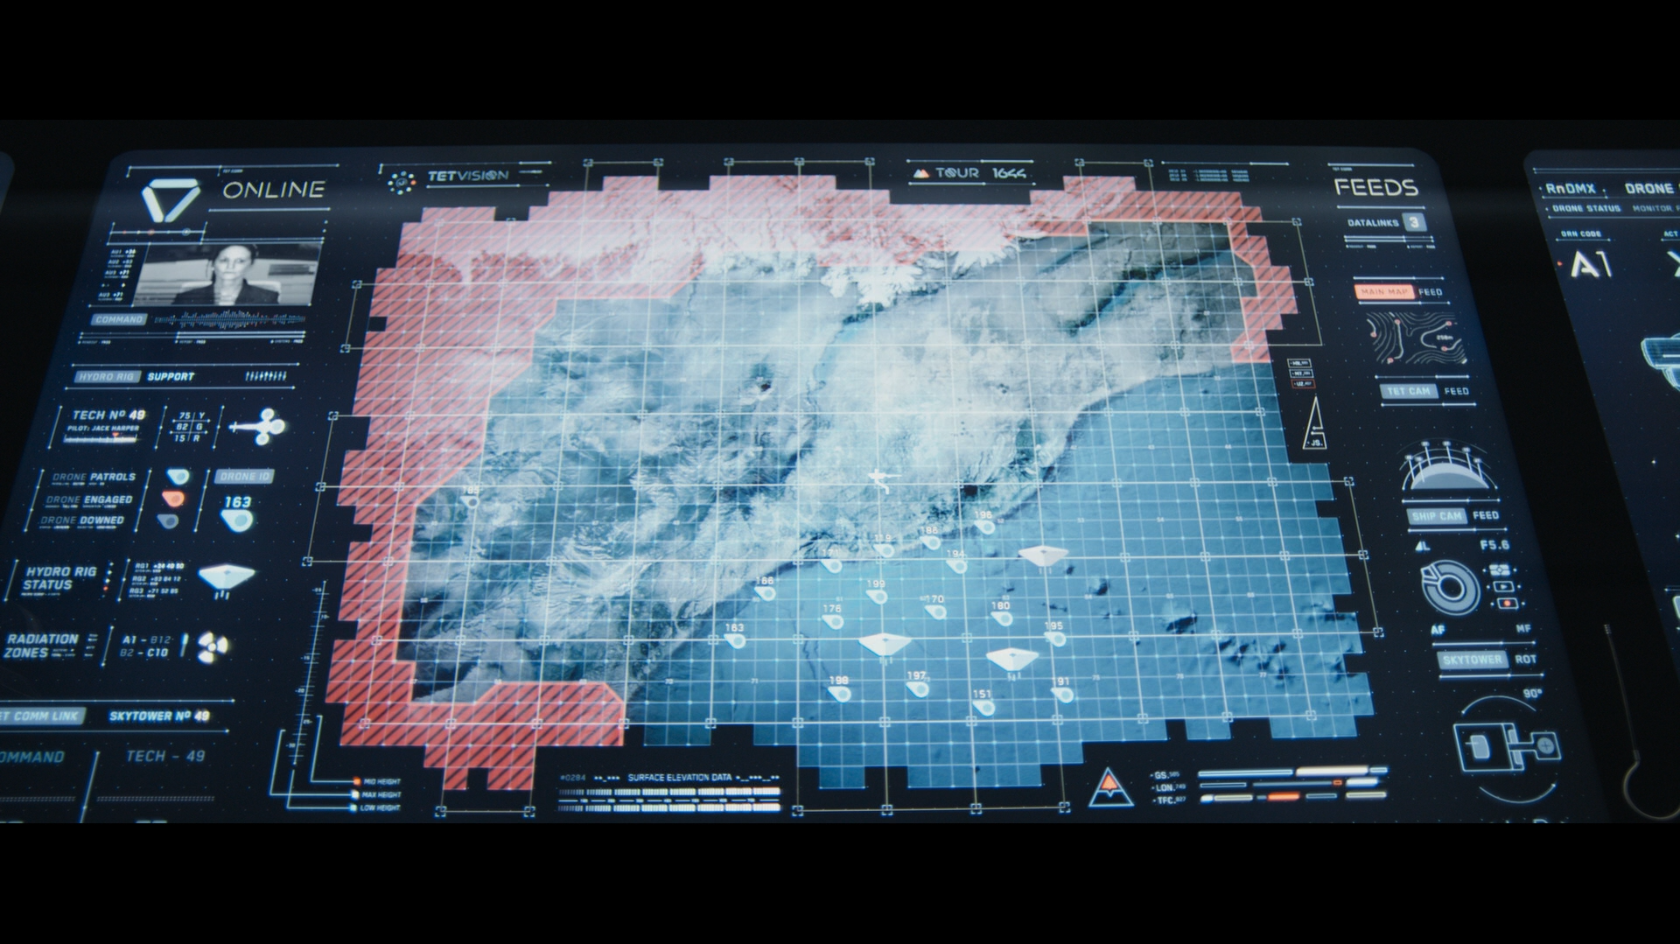 Large touch-based light table from the movie Oblivion cropped in to data that is showing alerts